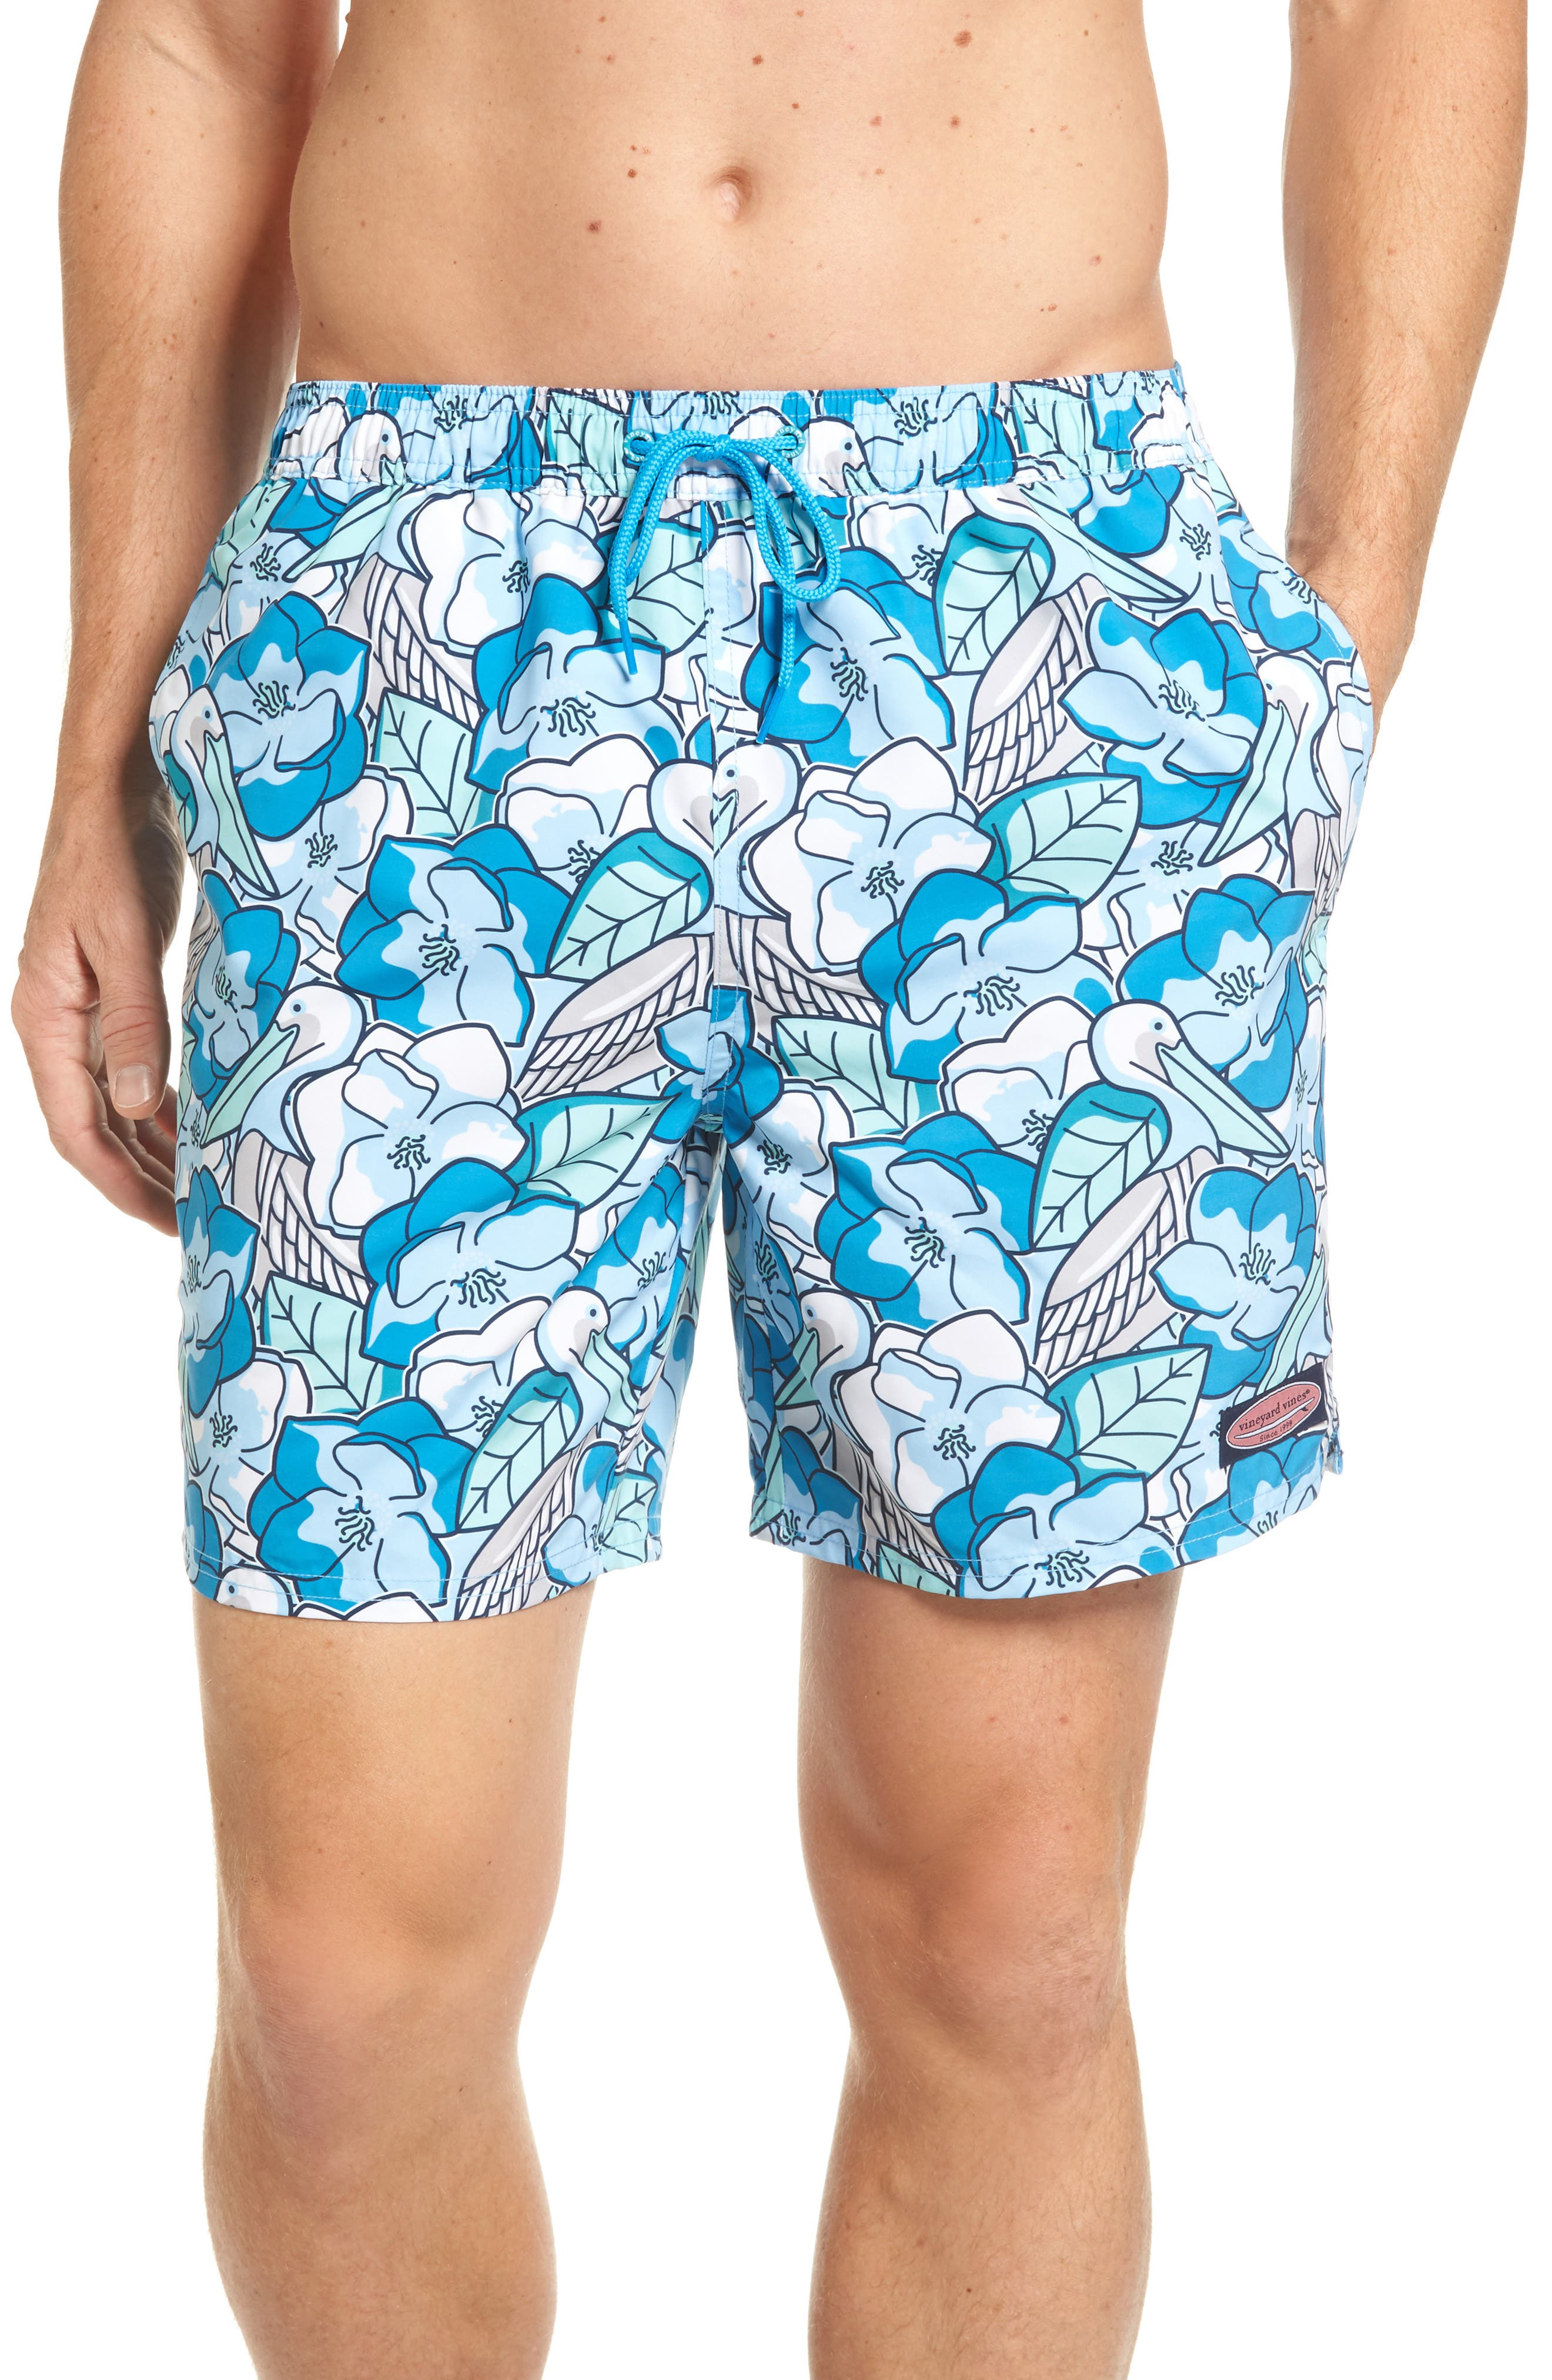 Pelican Magnolias Chappy Swim Trunks,                         Main,                         color, 413